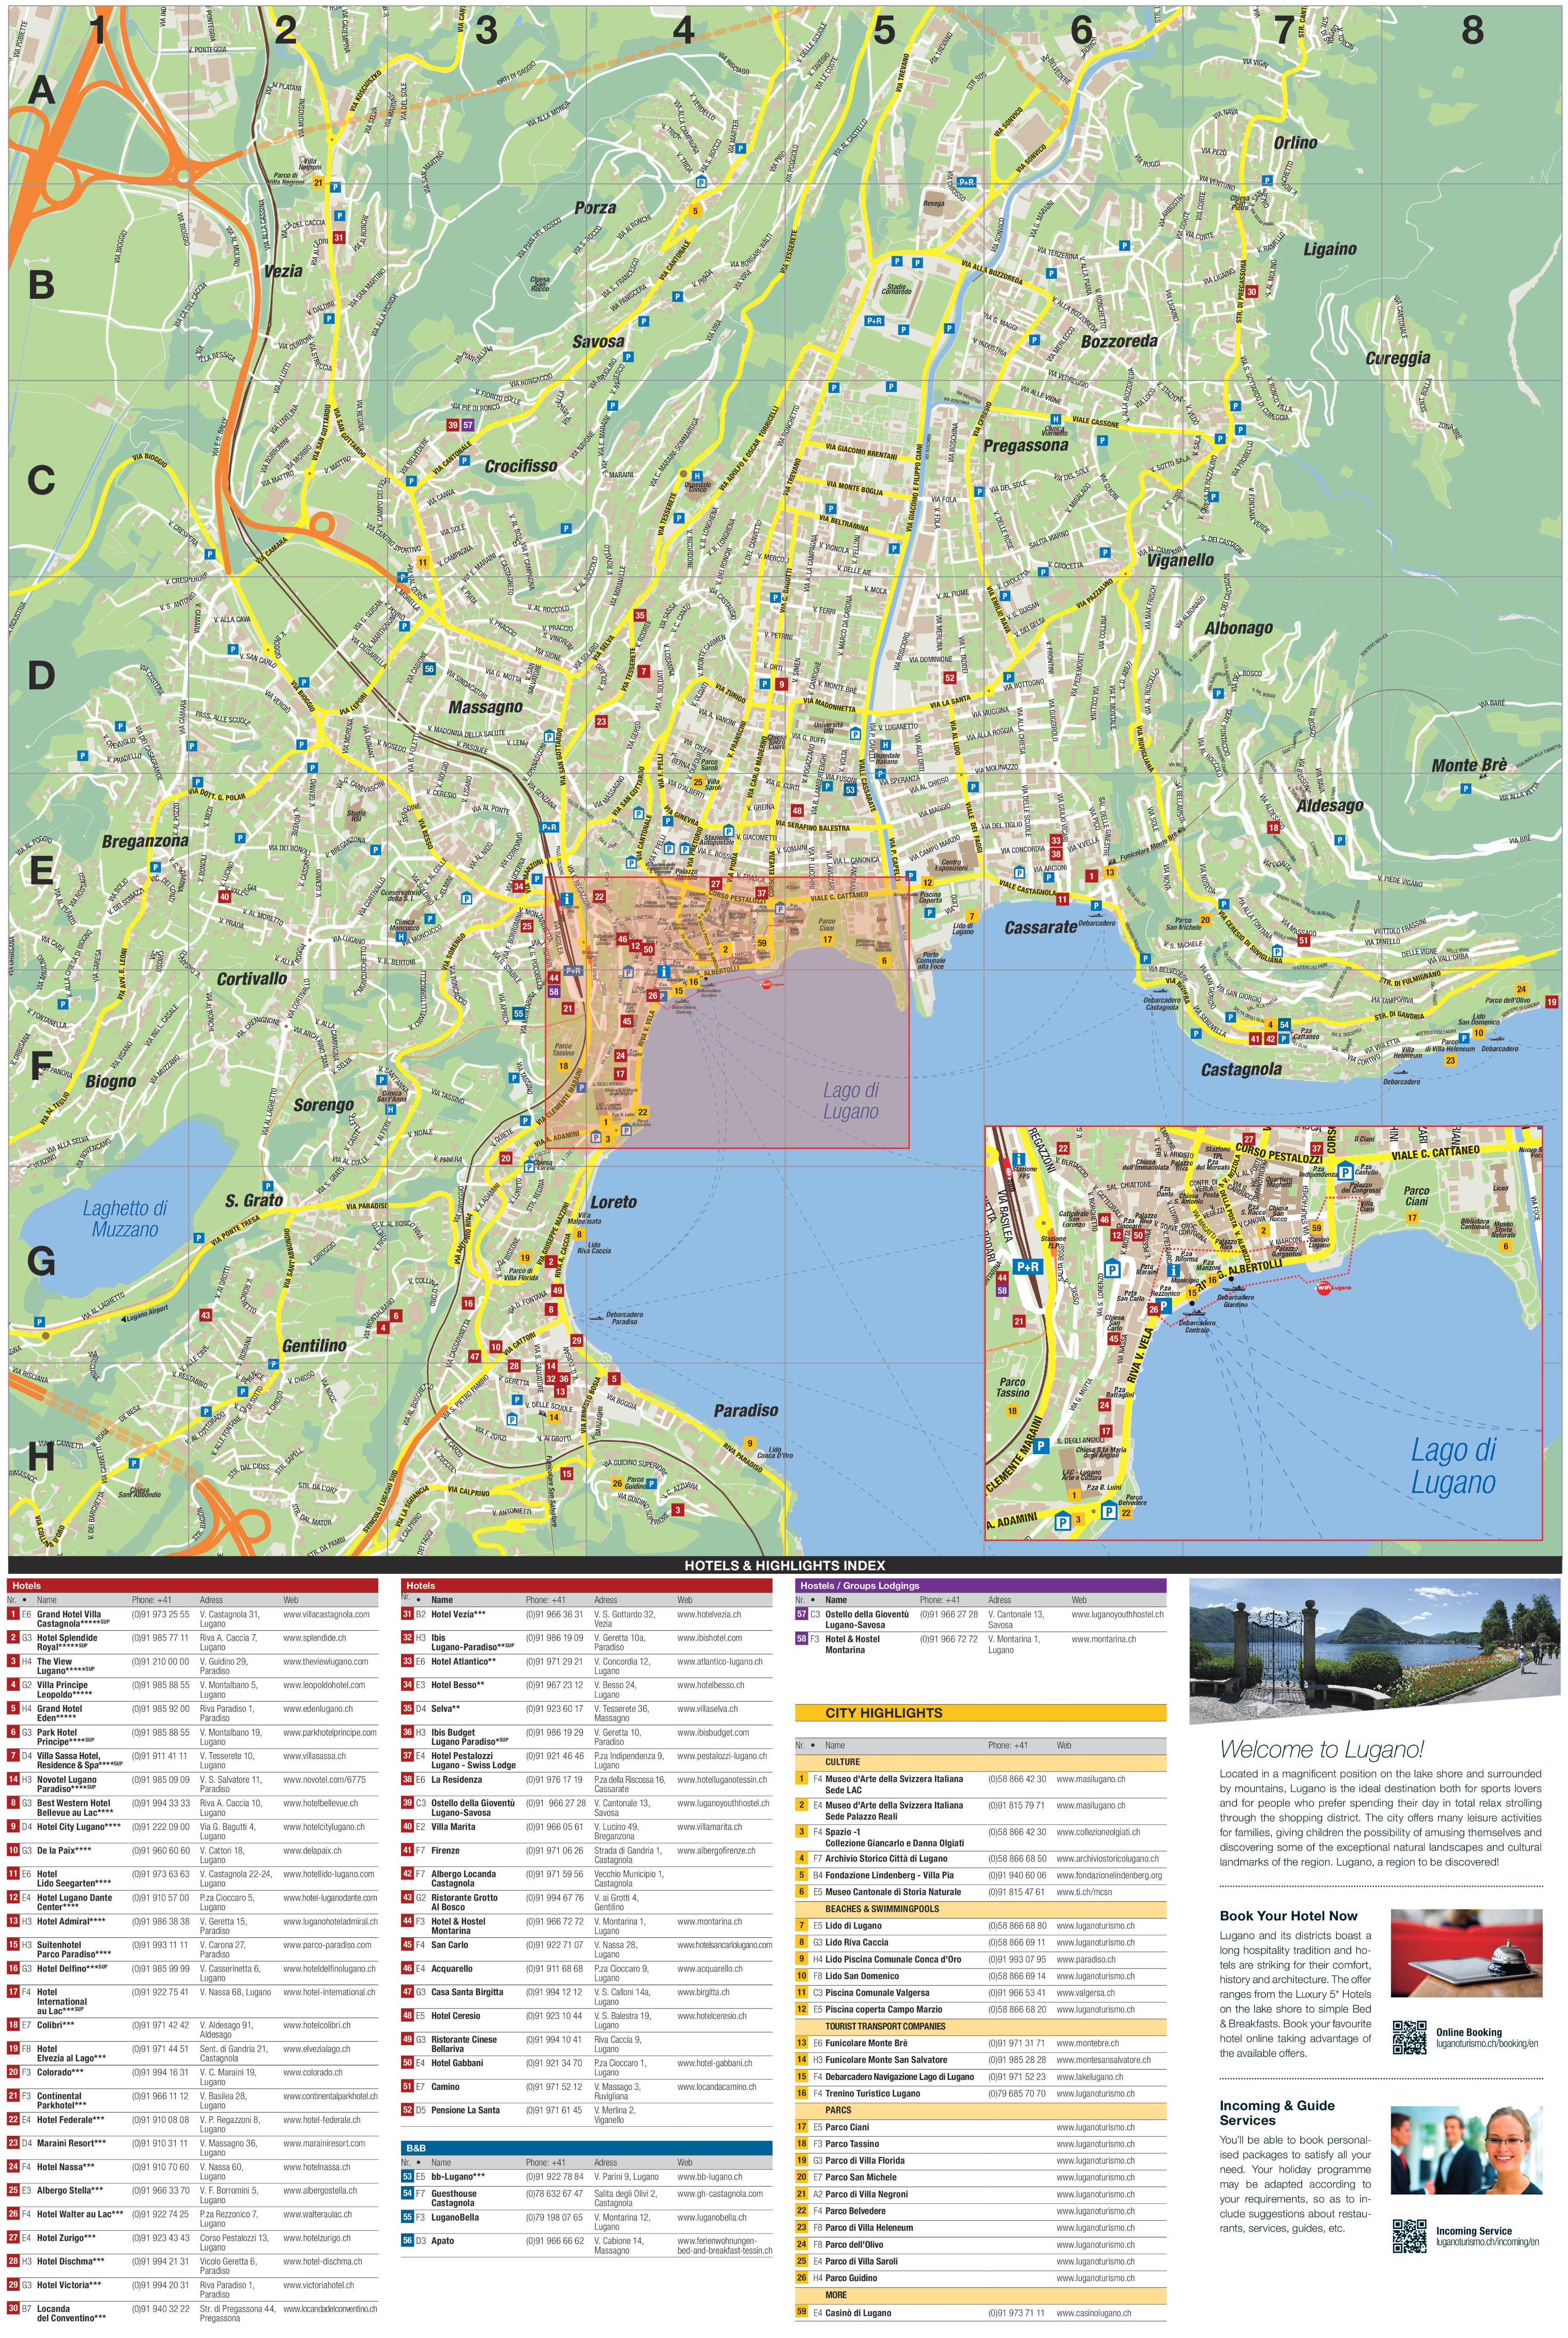 Lugano hotels and sightseeings map